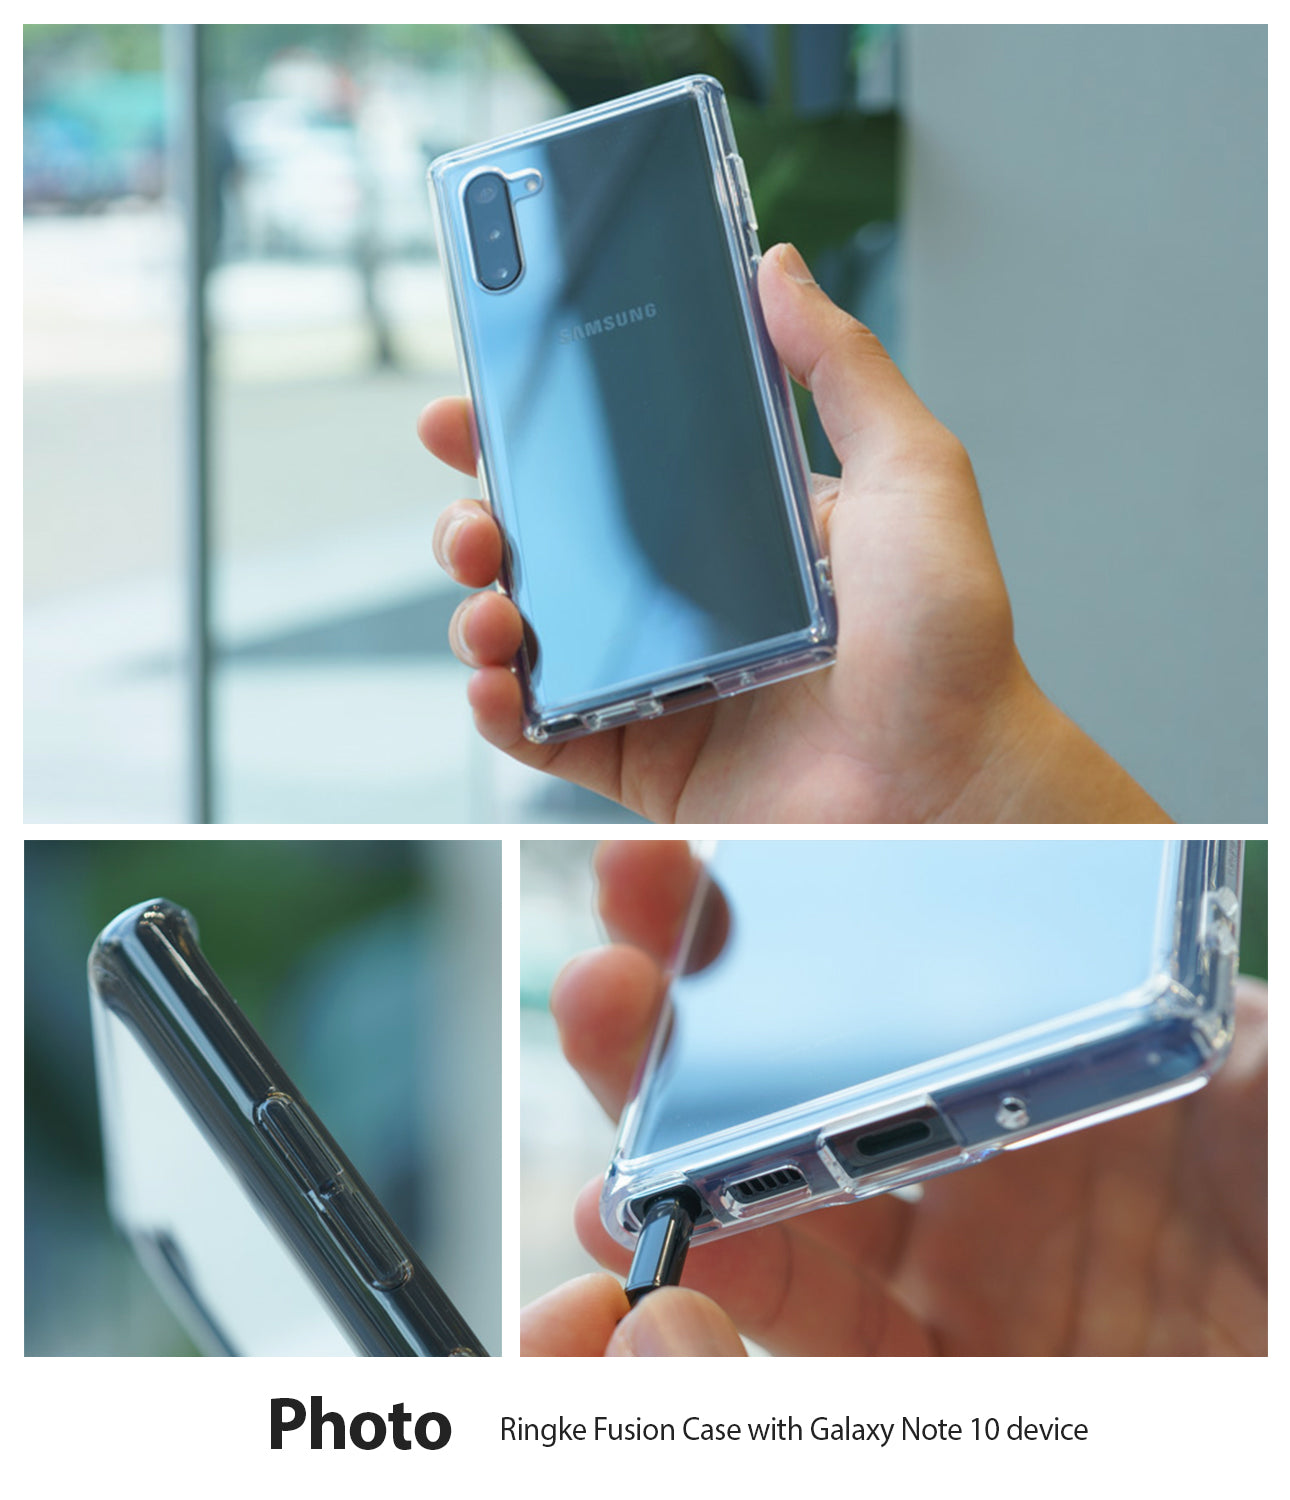 ringke fusion case for galaxy note 10